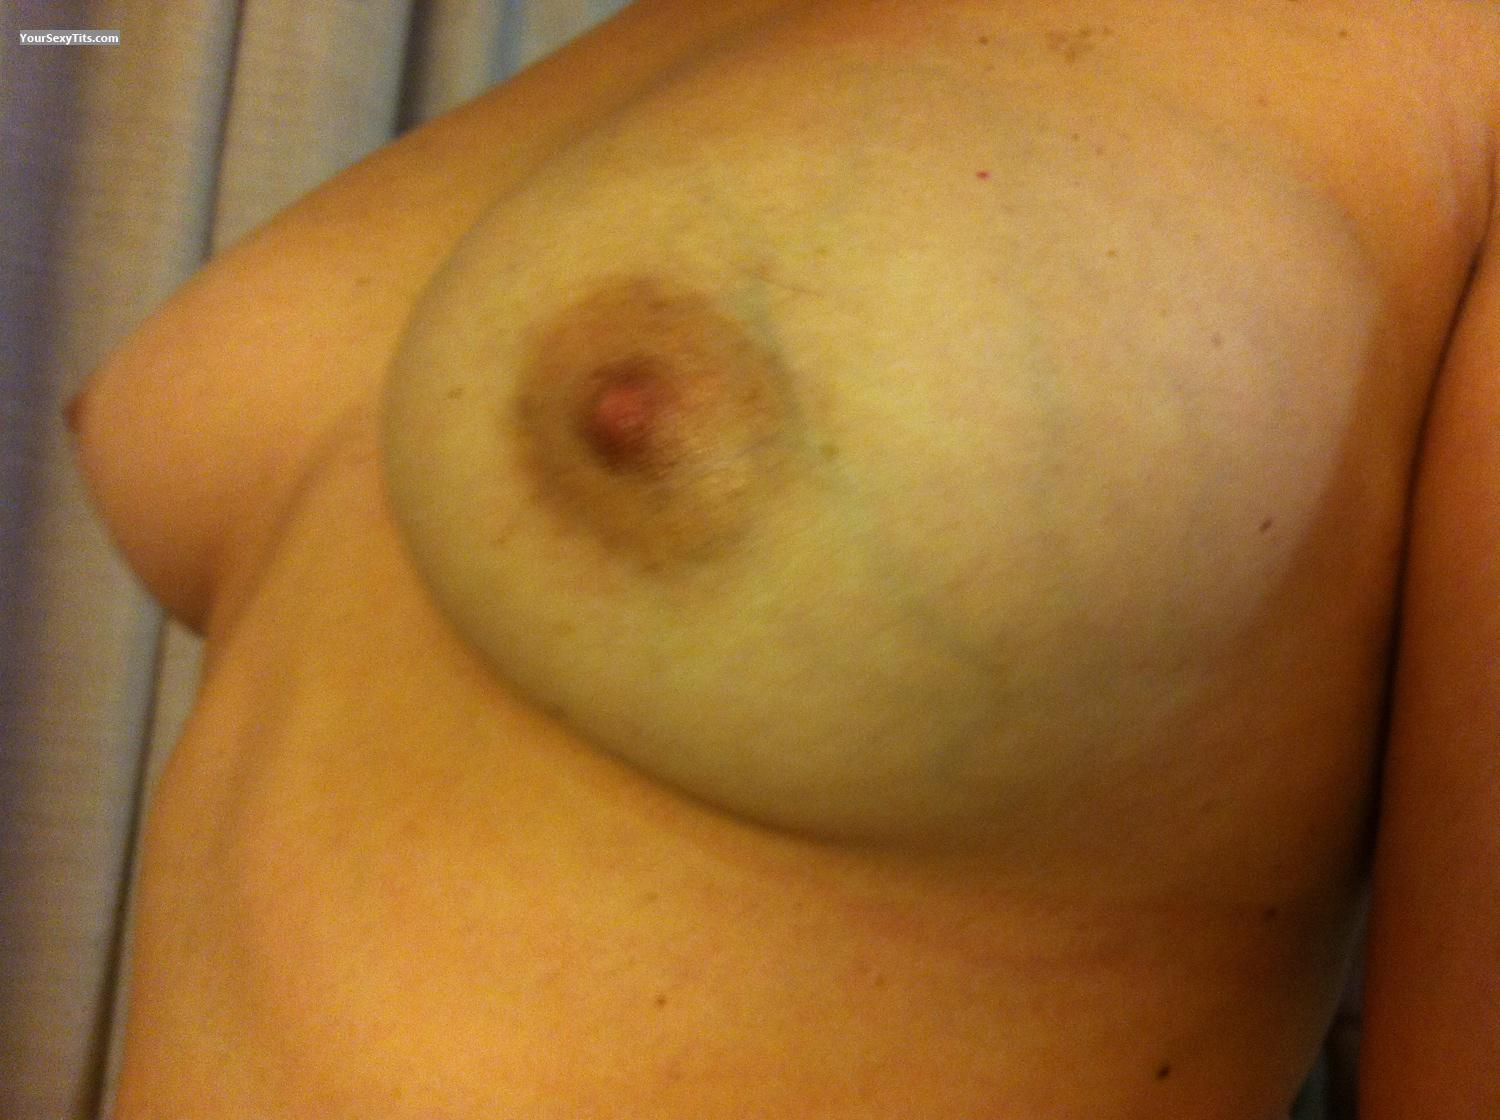 Tit Flash: My Medium Tits By IPhone (Selfie) - Laura from Australia